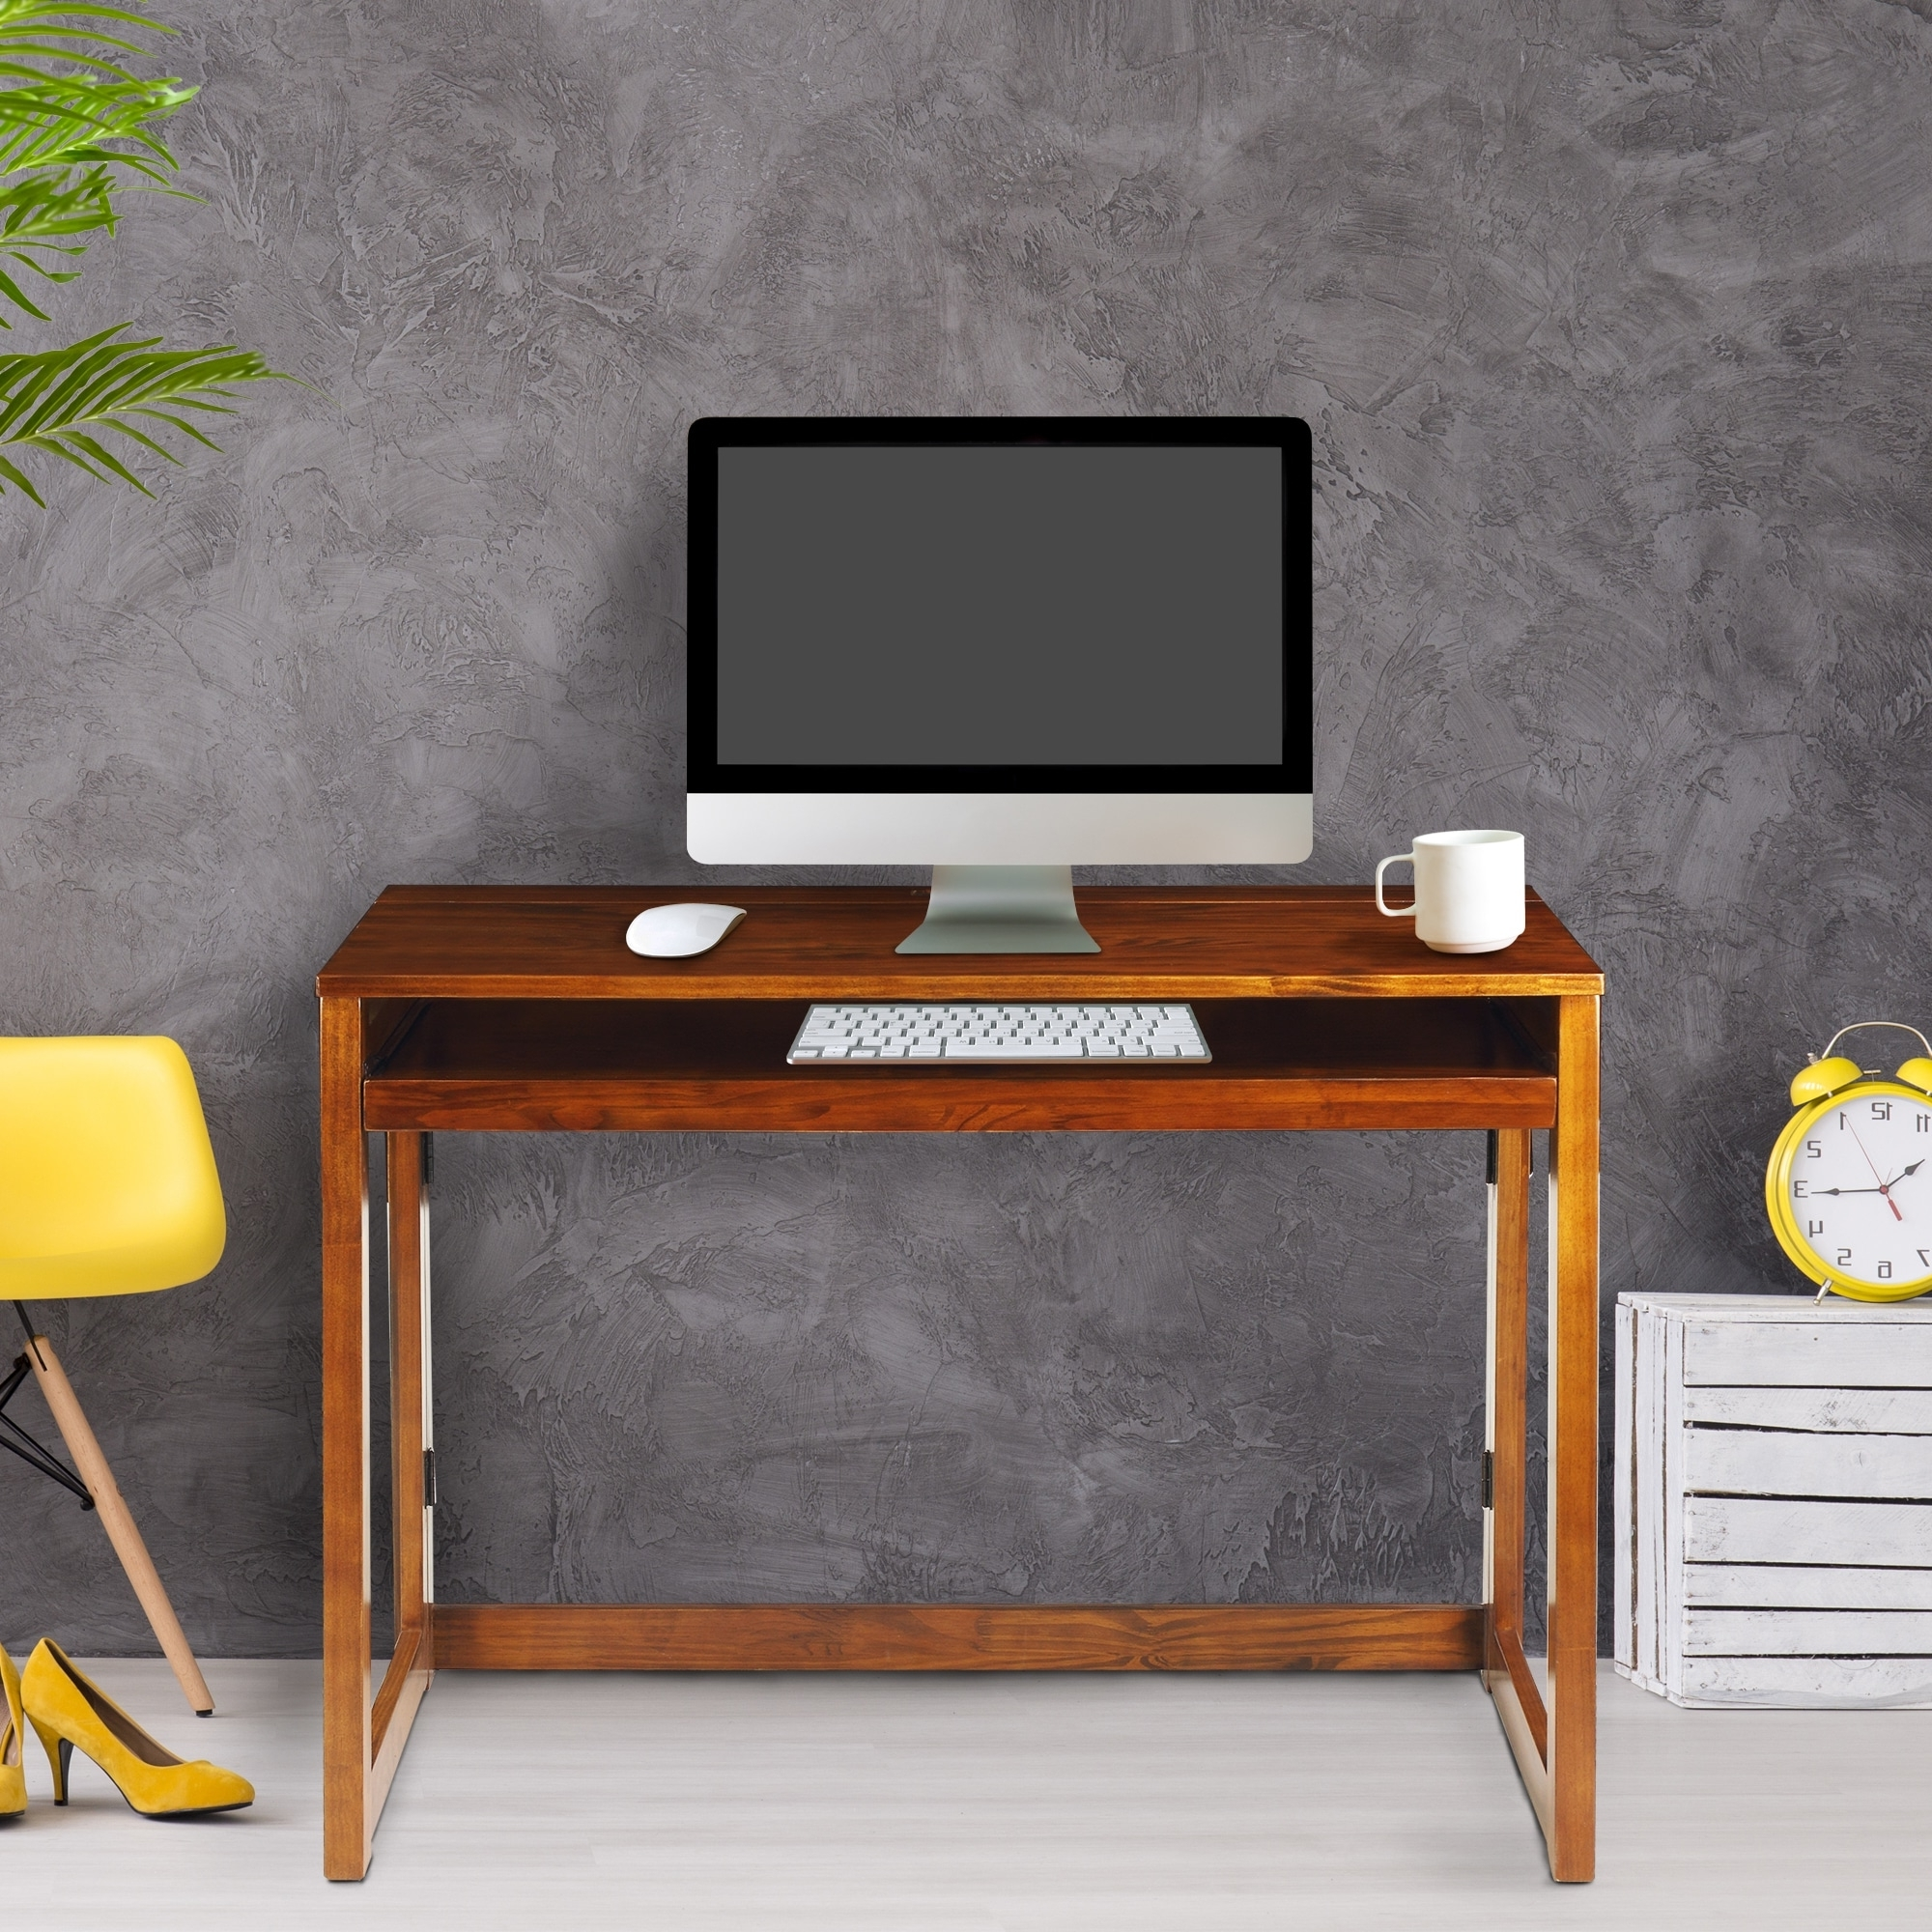 2019 Computer Desks With Usb Ports Regarding Modern Folding Desk With 4 Usb Ports – Warm Brown – Free Shipping (View 10 of 20)